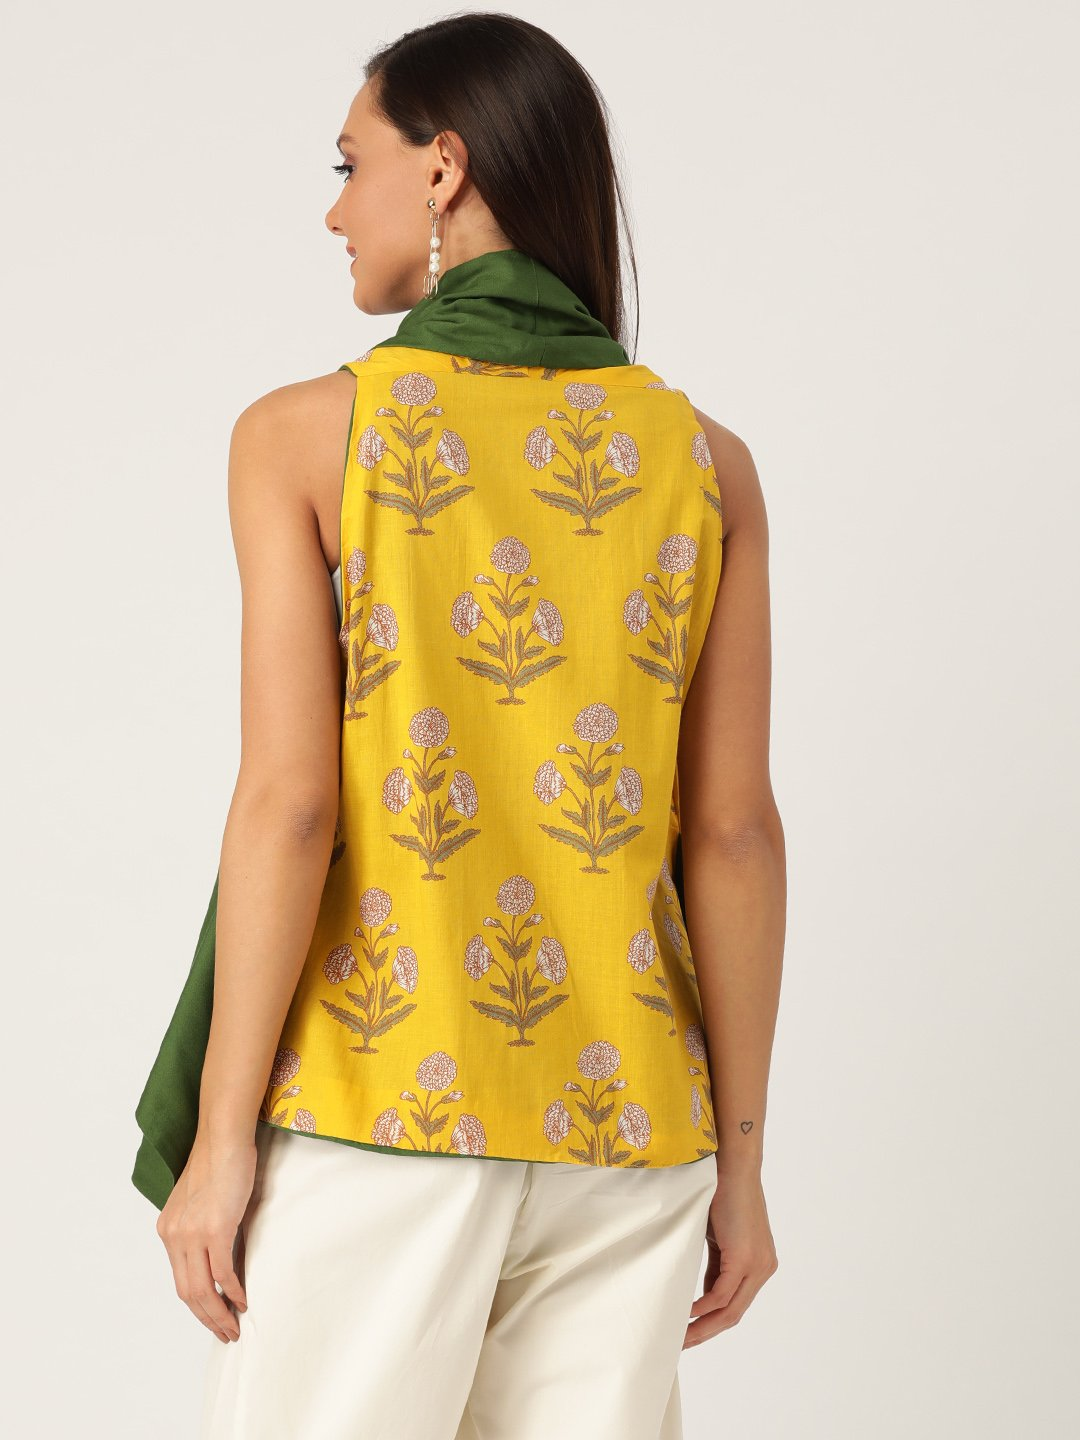 Reversible Shrug Yellow Green Floral